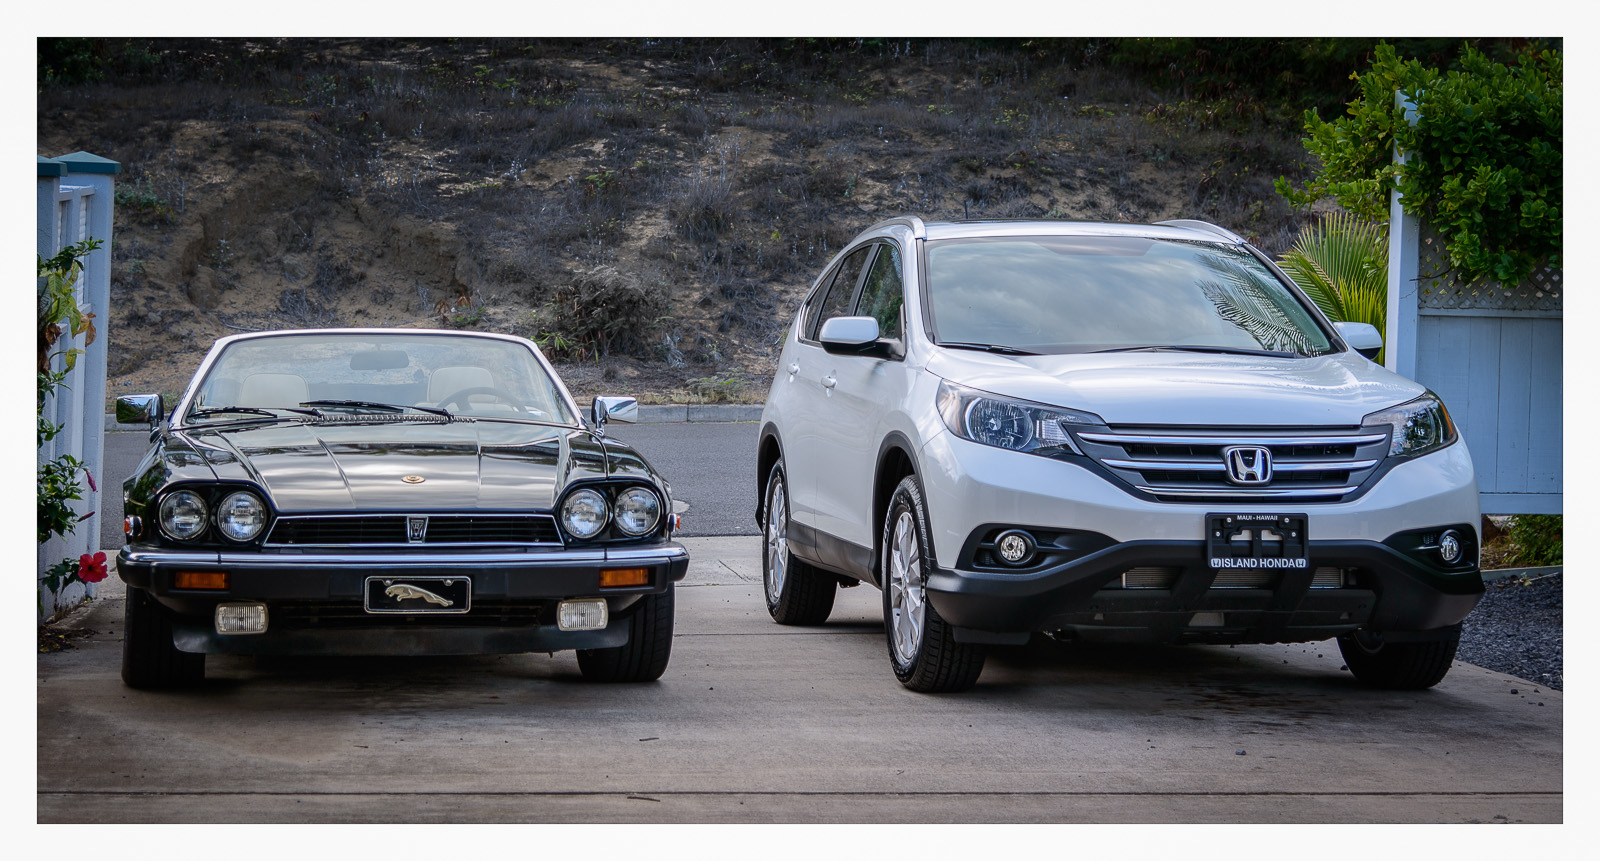 Difference between ex and lx honda cr v for Difference between honda cr v lx and ex